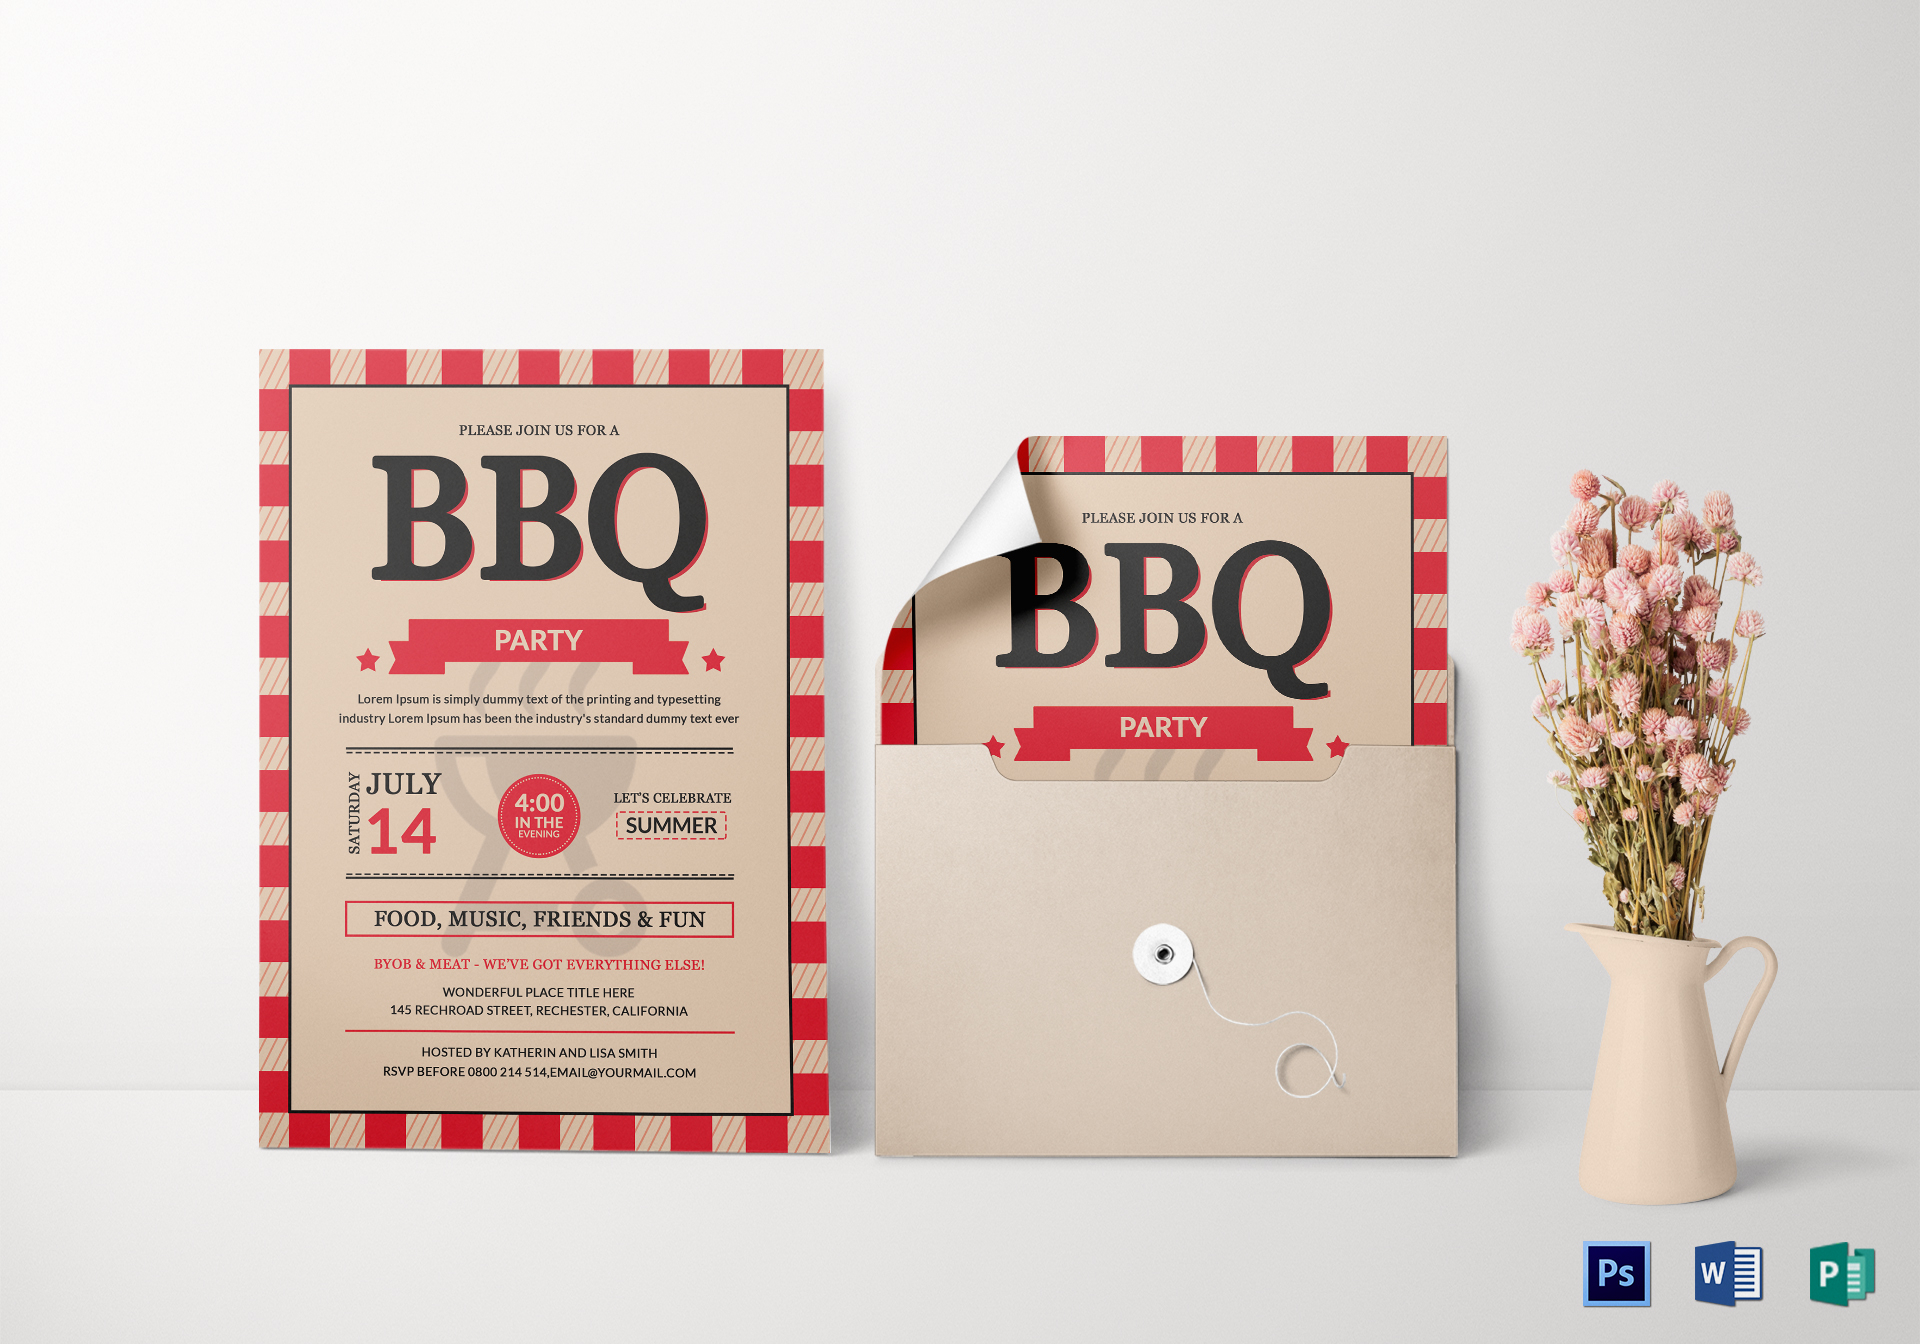 bbq party invitation card design template in word psd publisher